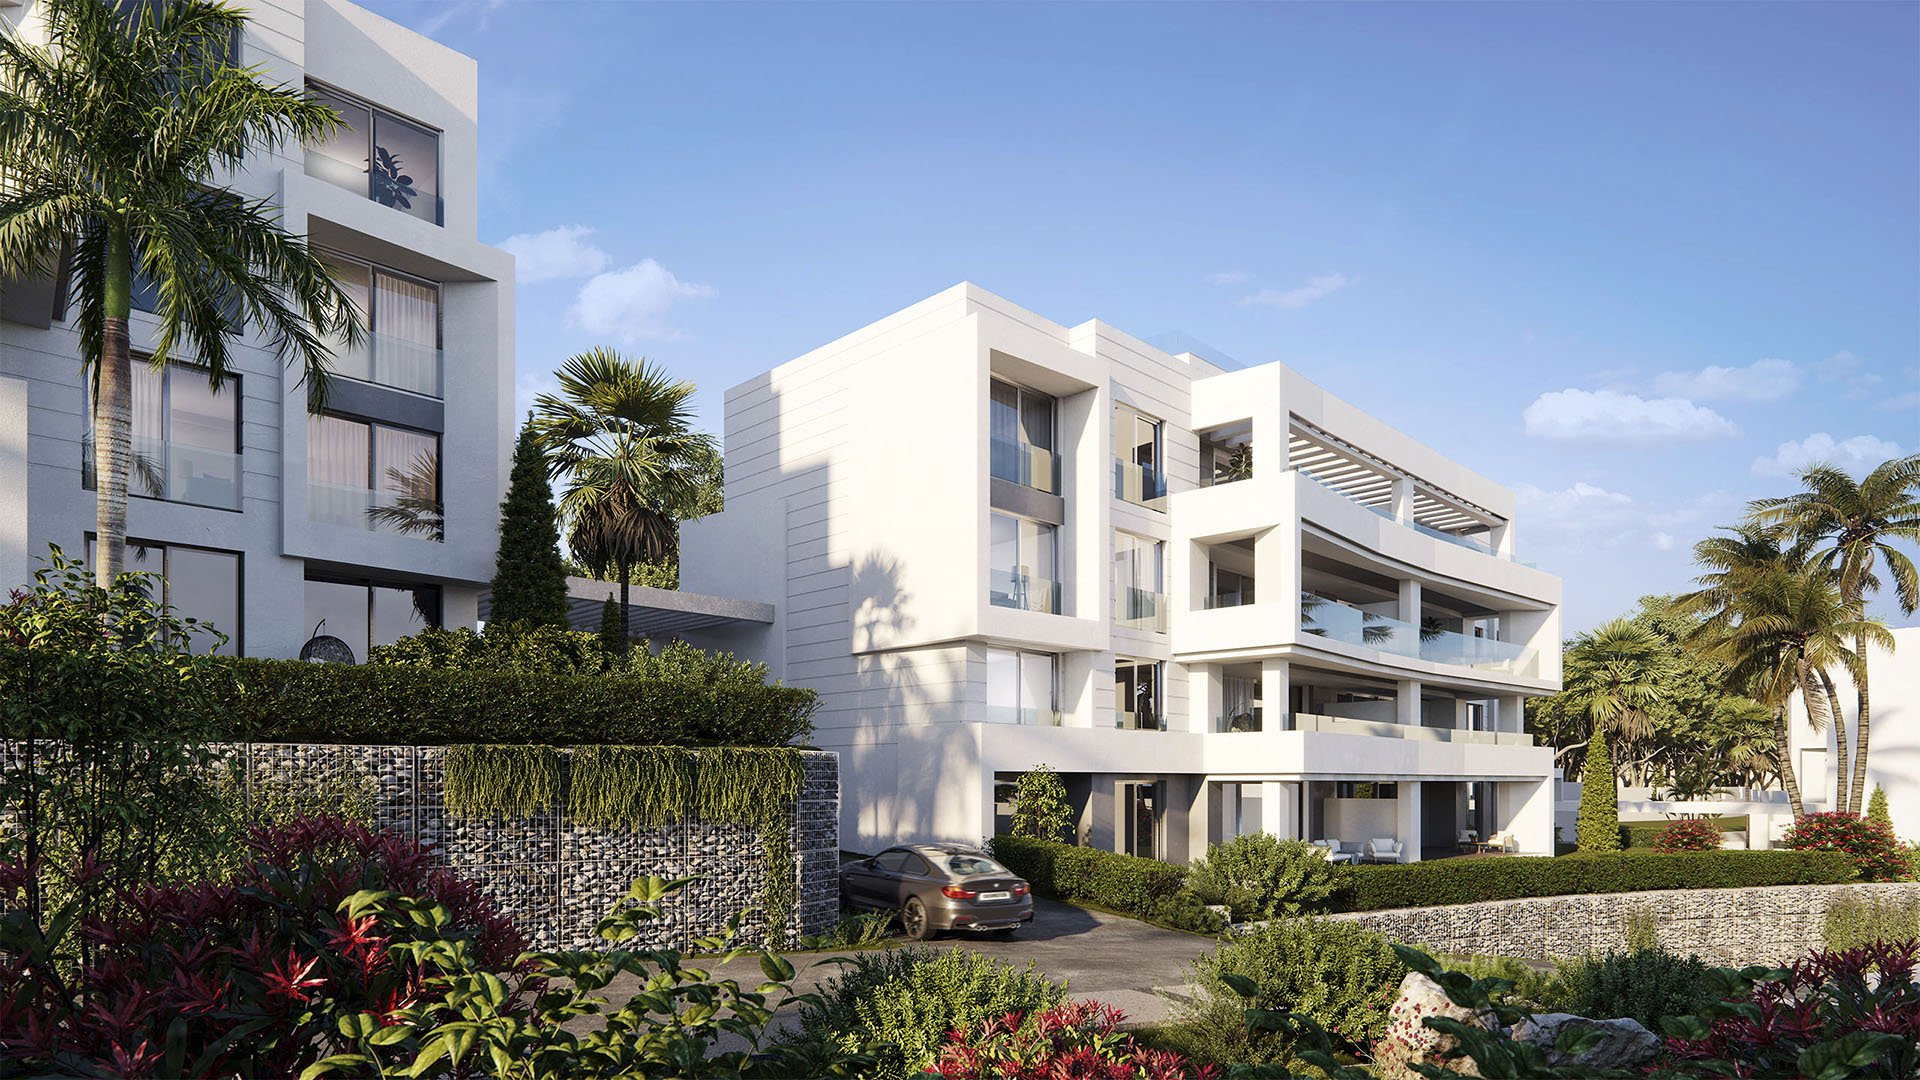 Soul Marbella Sunshine: Houses in Marbella in an exclusive resort